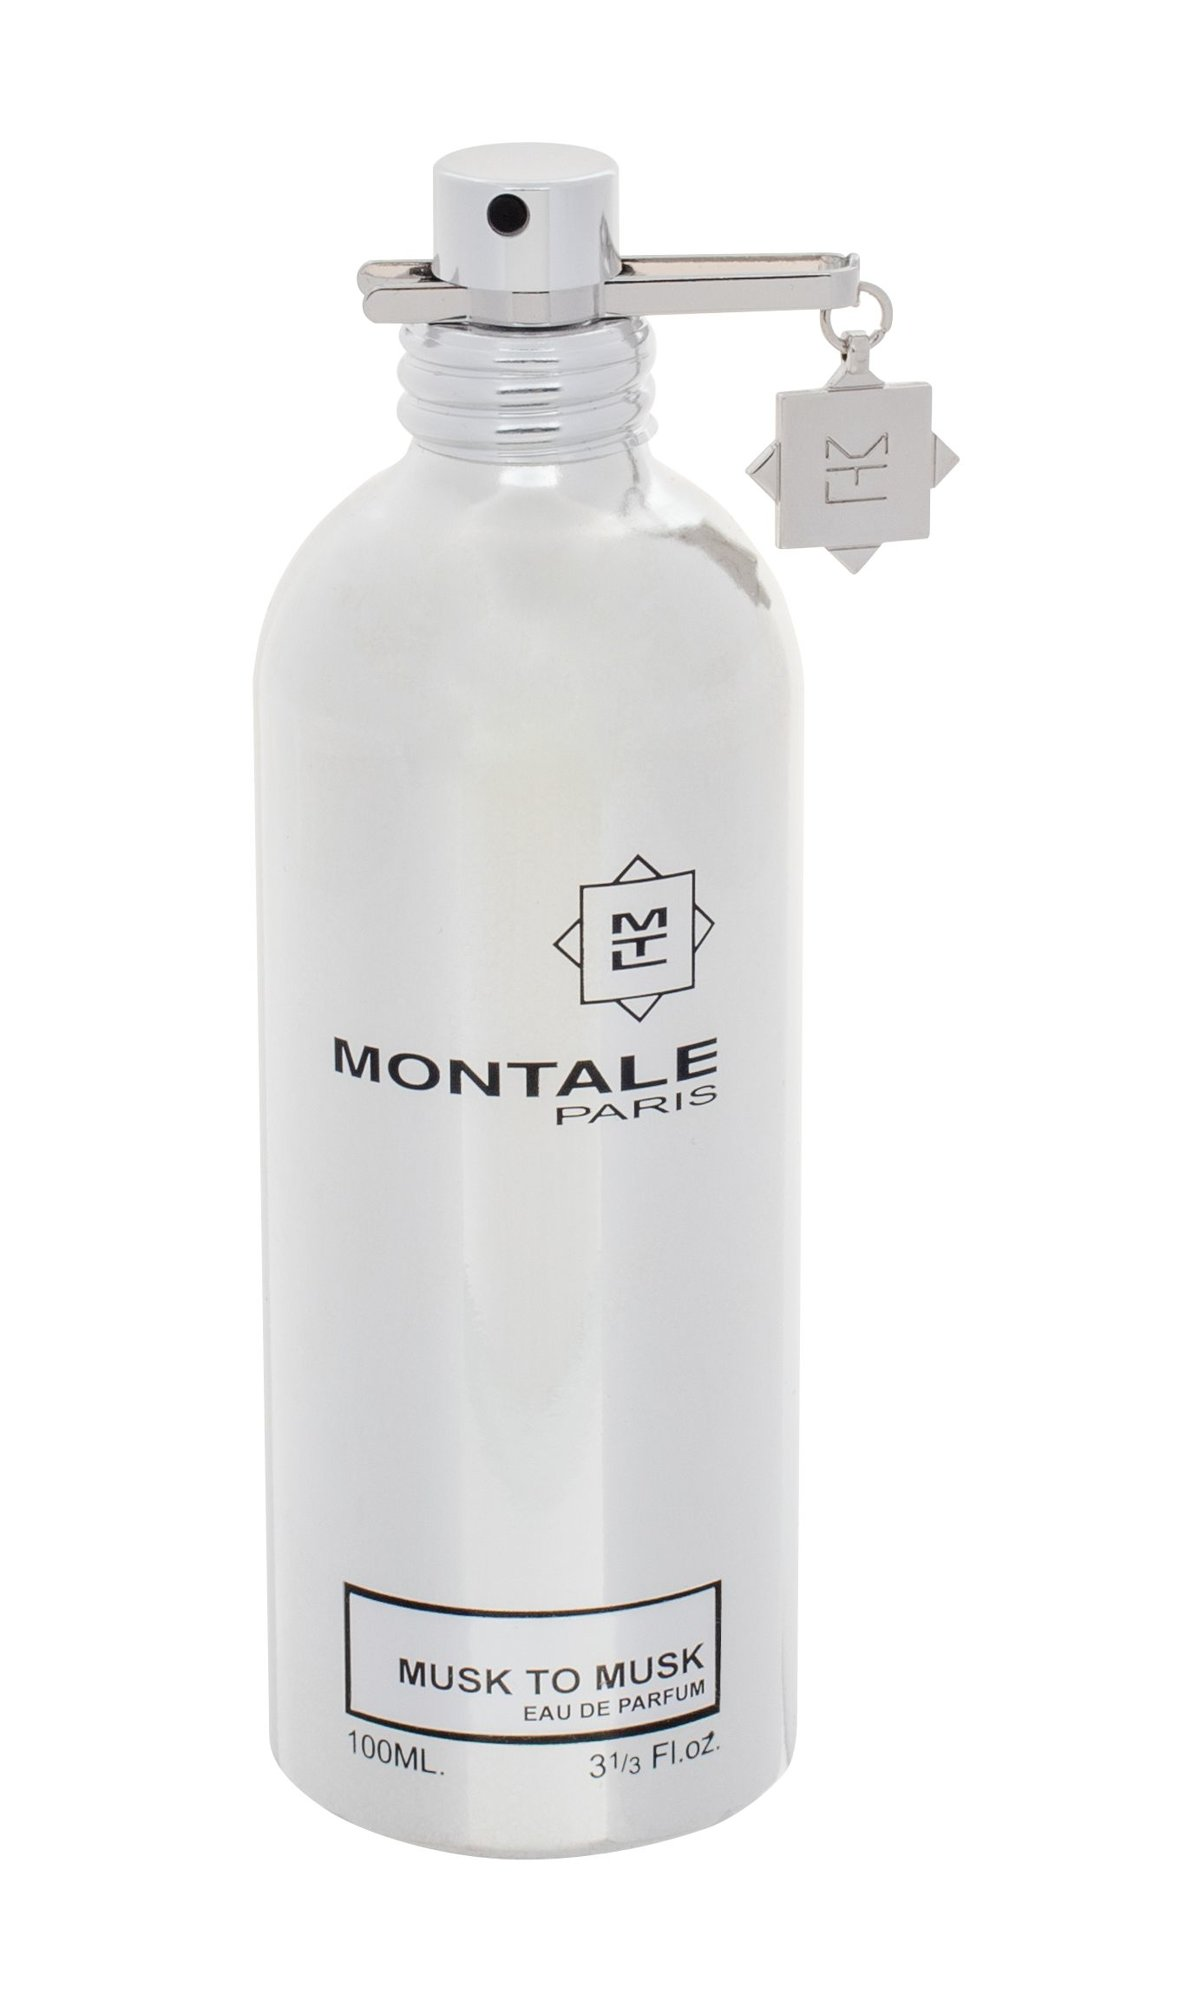 Montale Paris Musk To Musk EDP 100ml